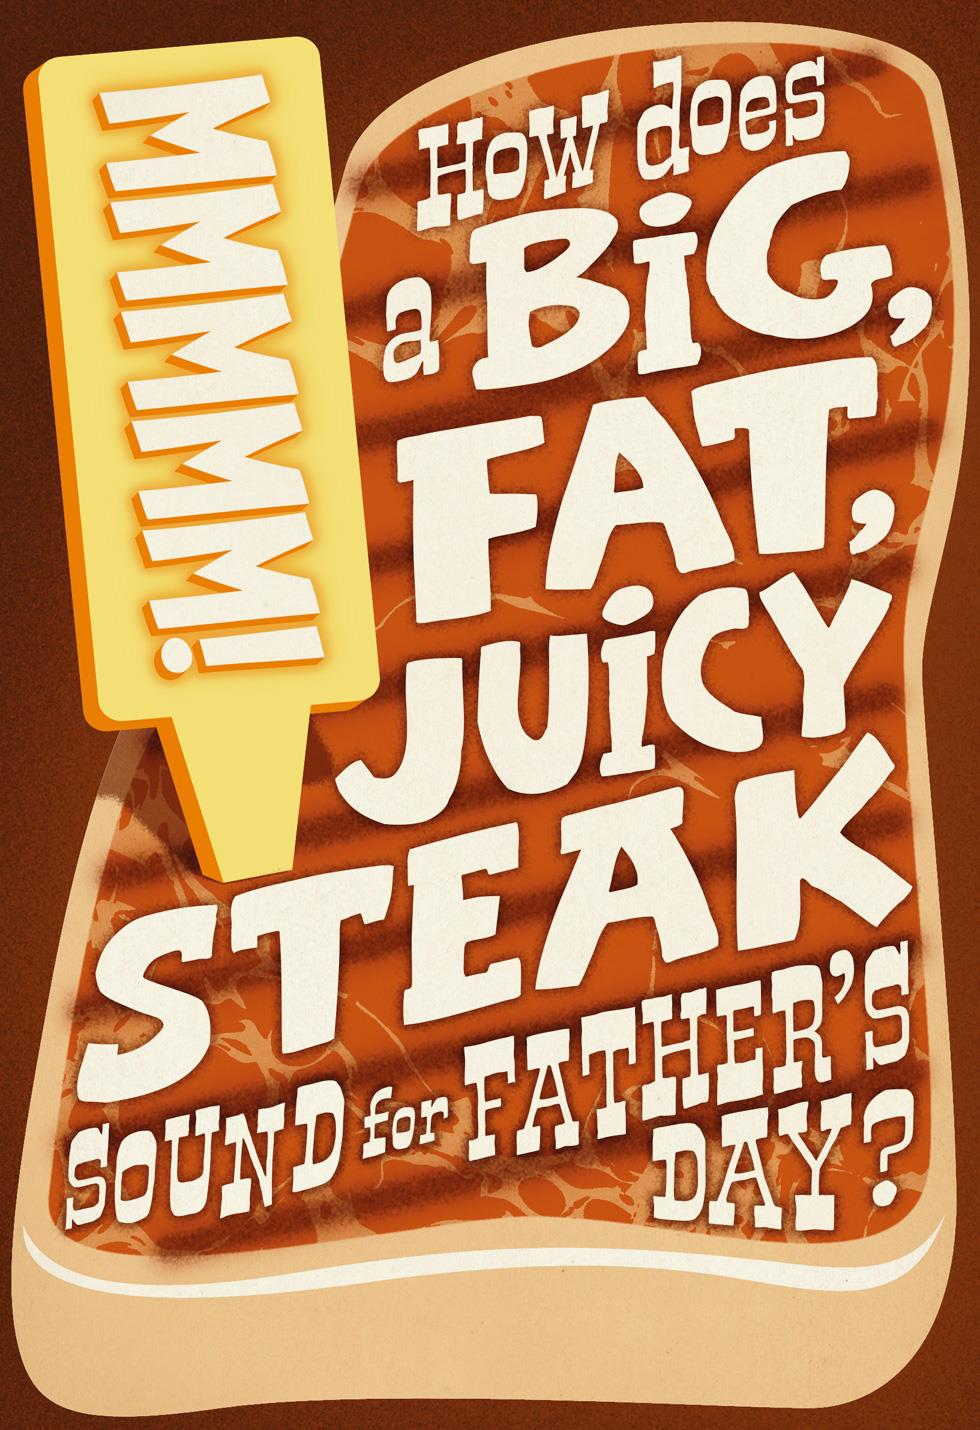 funny steak jokes father u0026 39 s day card